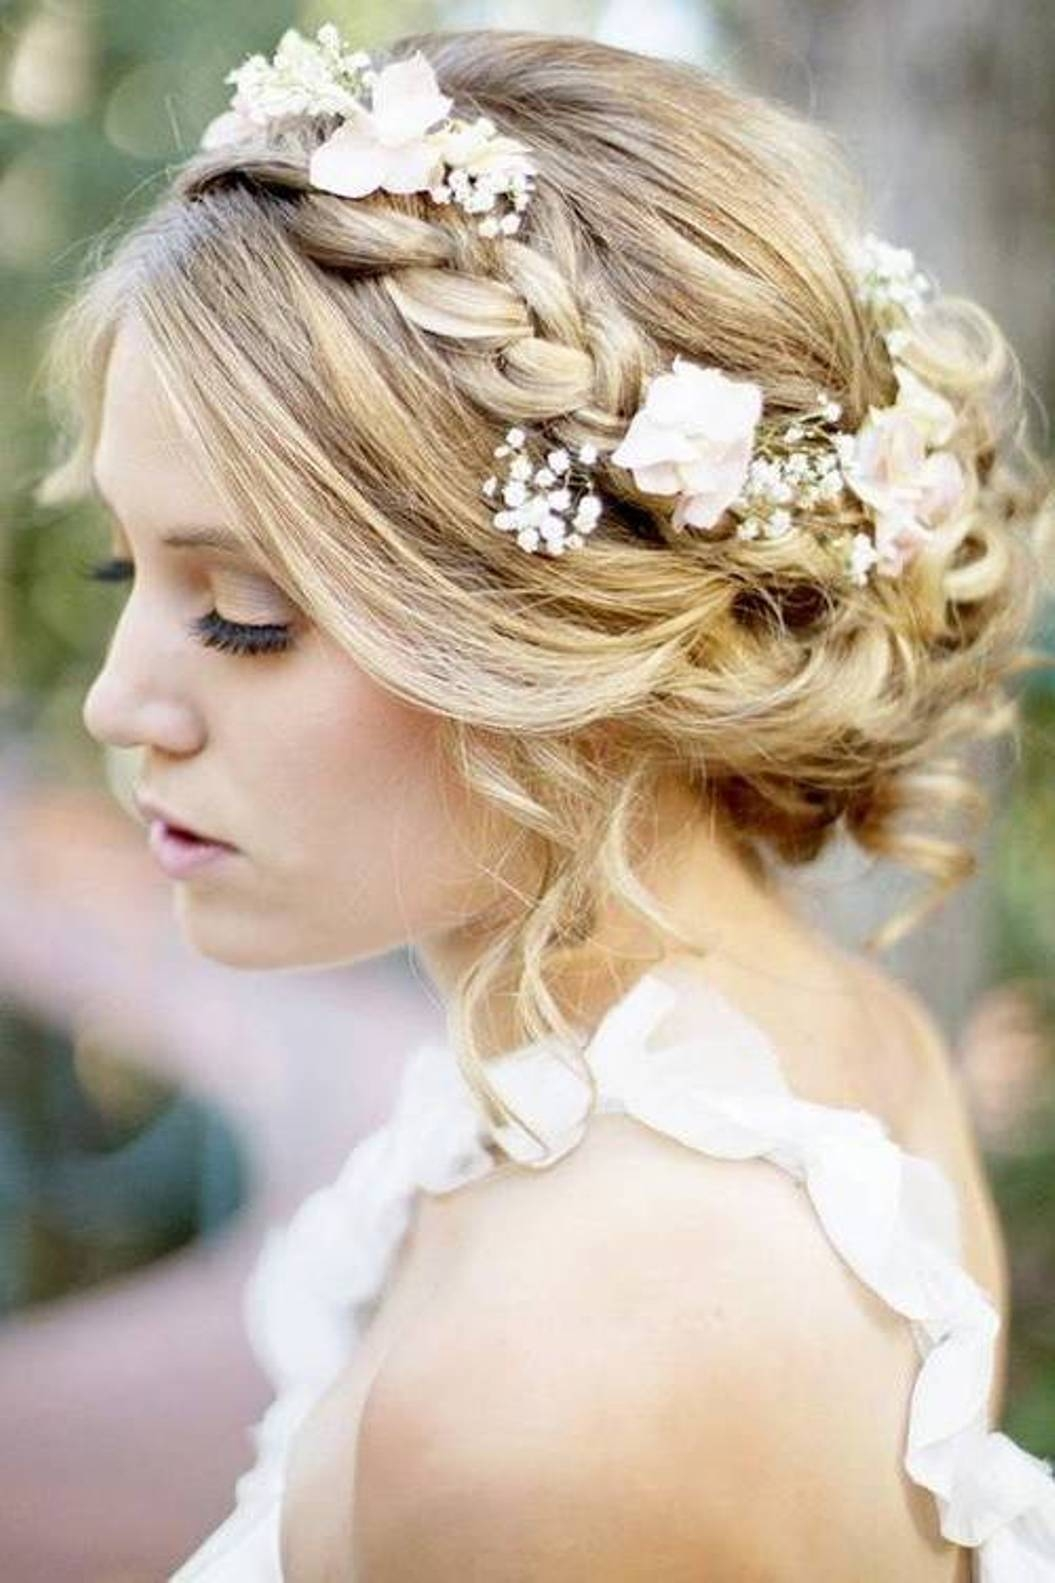 top 35 wedding hairstyles for women in 2017 – hairstyles for woman